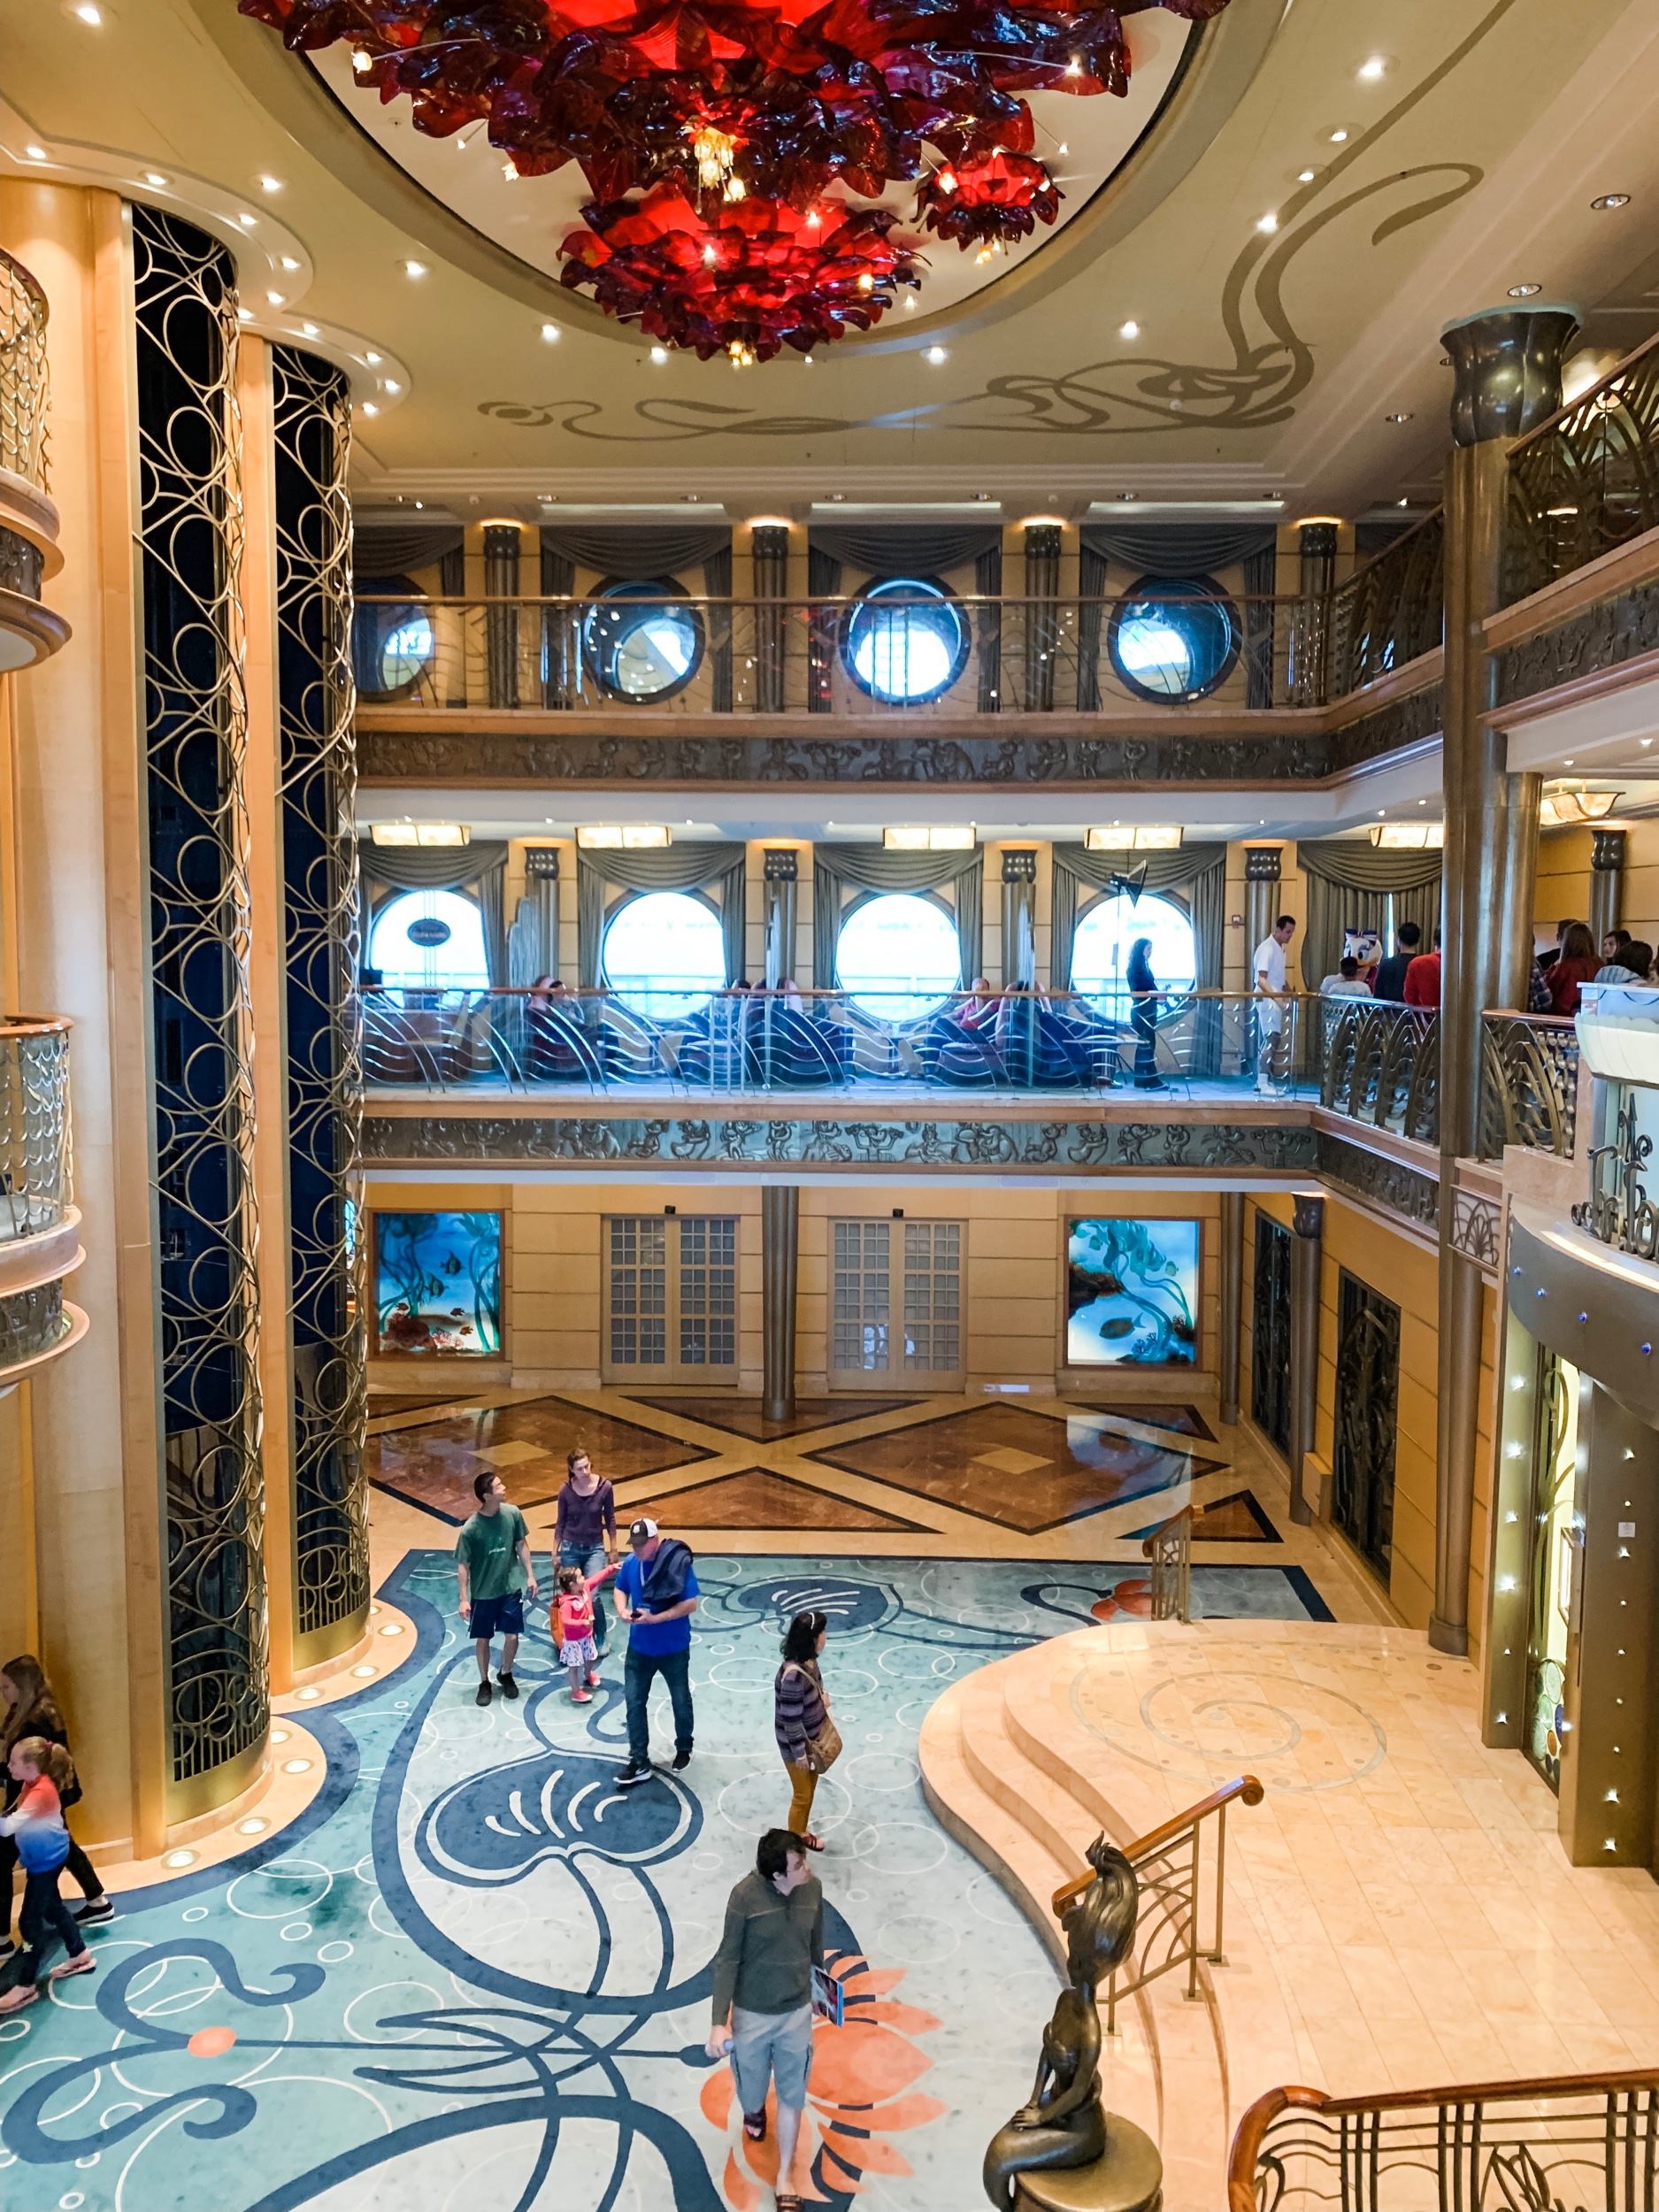 The beautiful main atrium on the ship